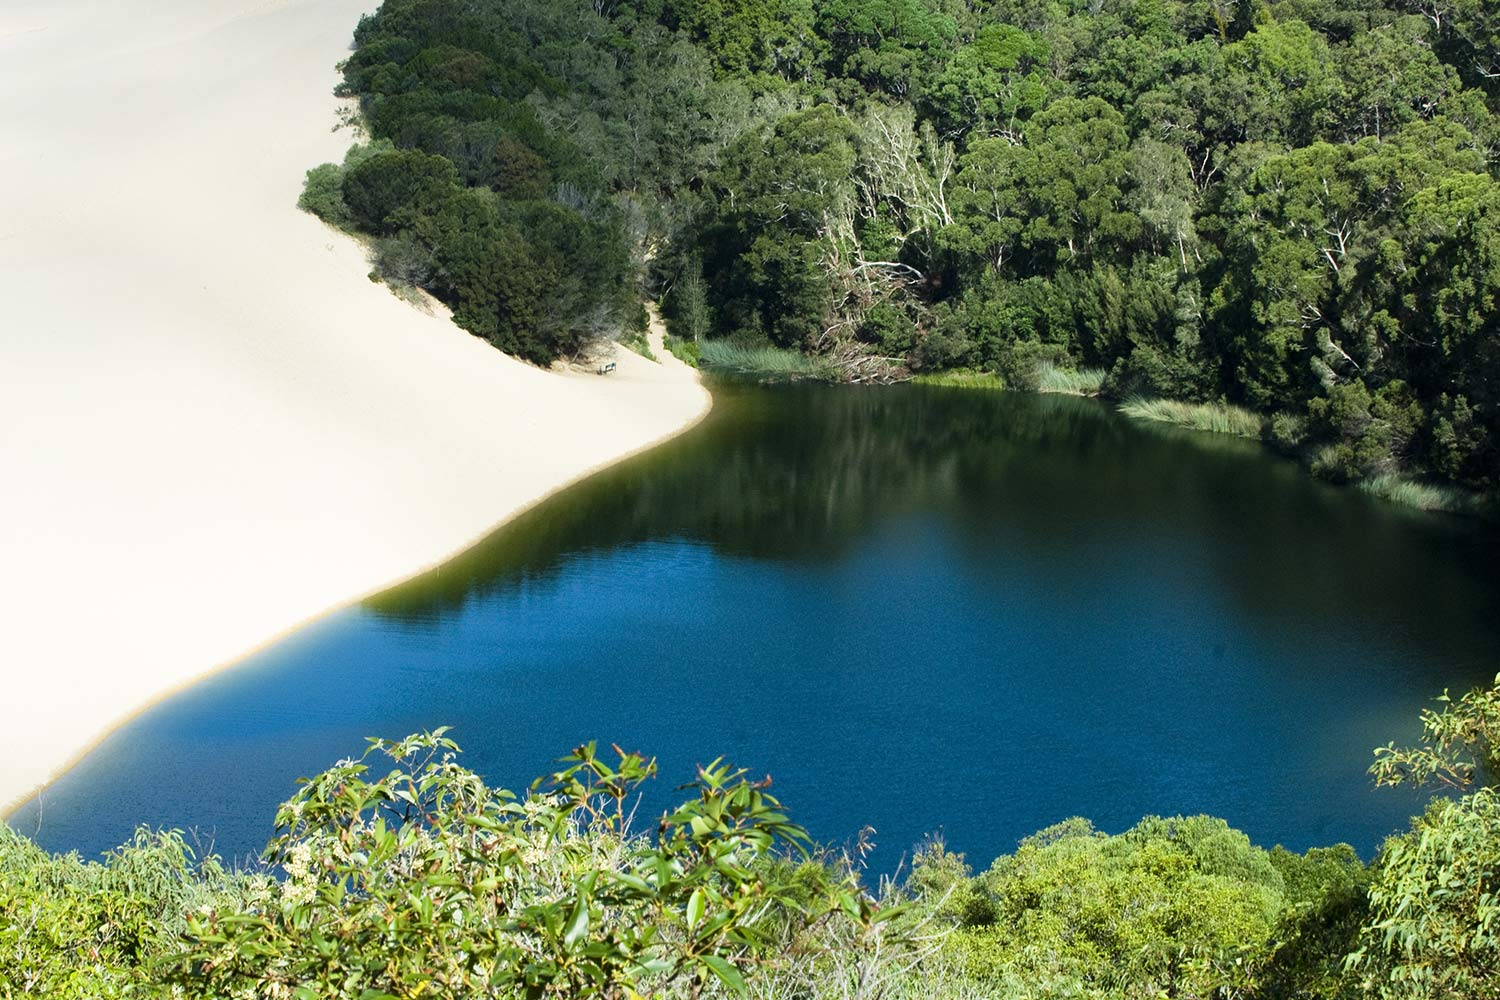 Fraser Island Tour Lake Wobby